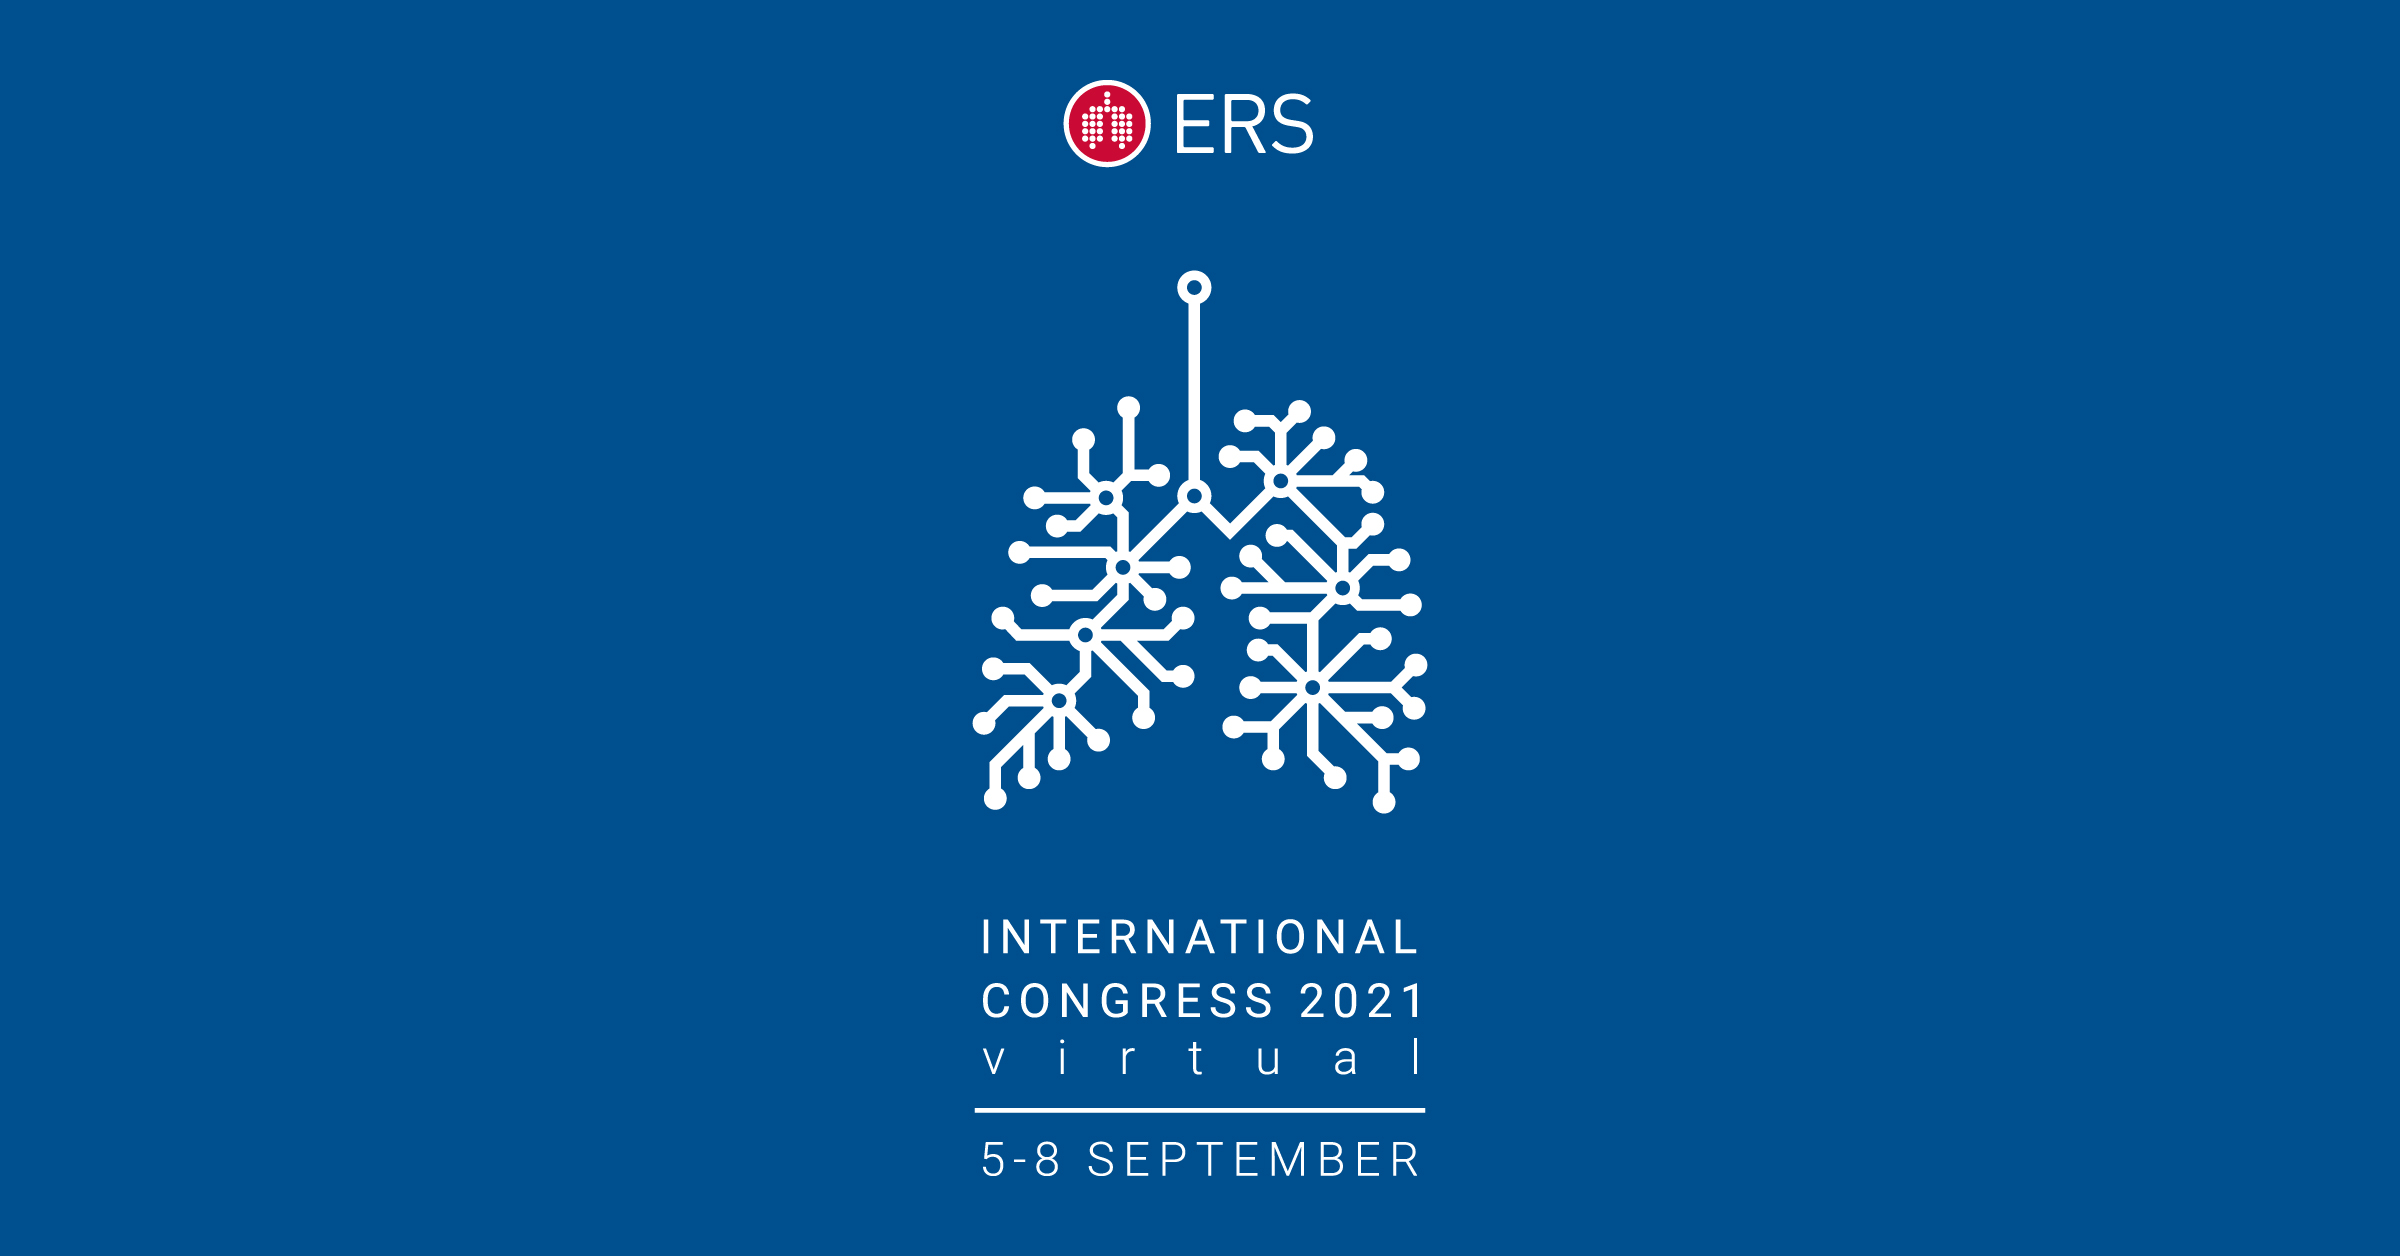 Relive the ERS International Congress 2021 - preview image